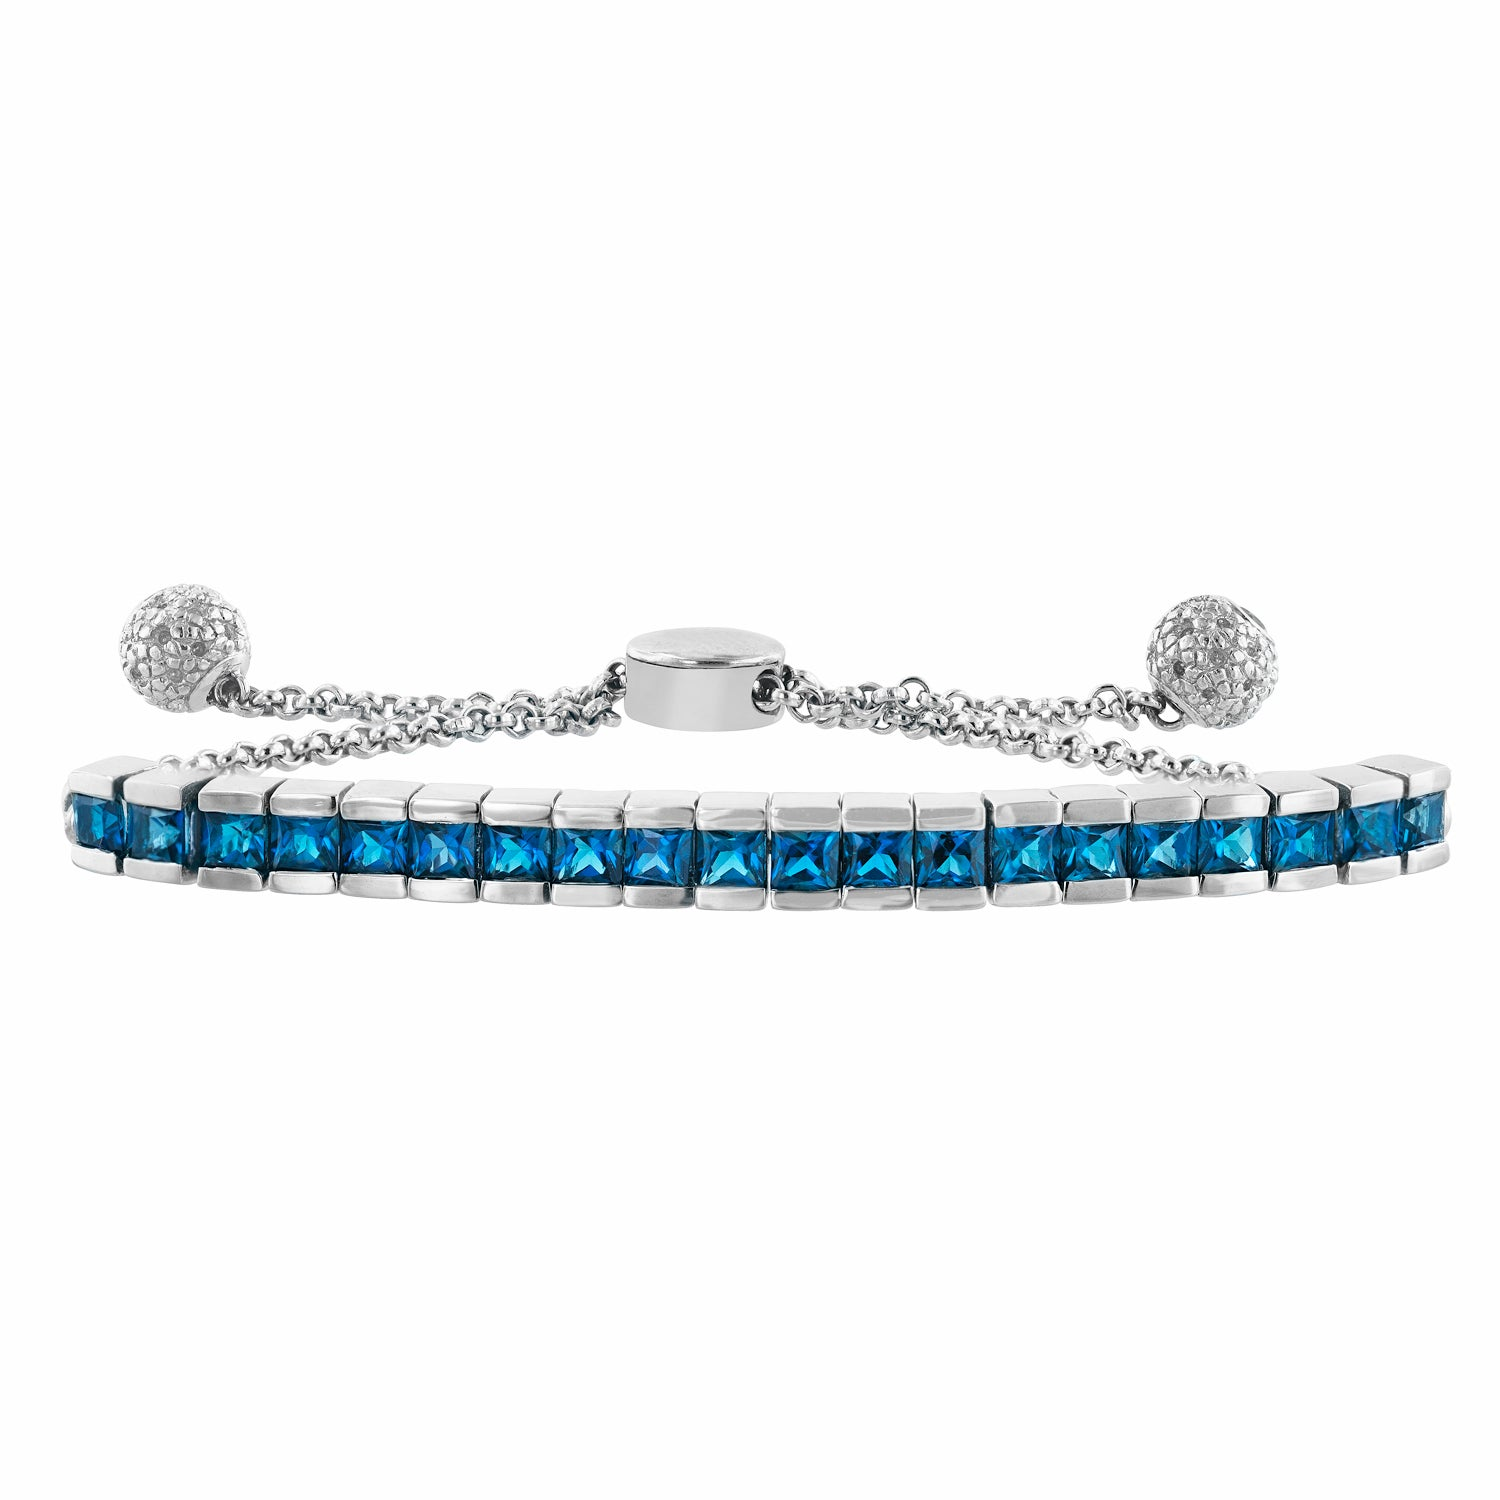 London Blue Topaz Adjustable Channel Gemstone Bolo Bracelet